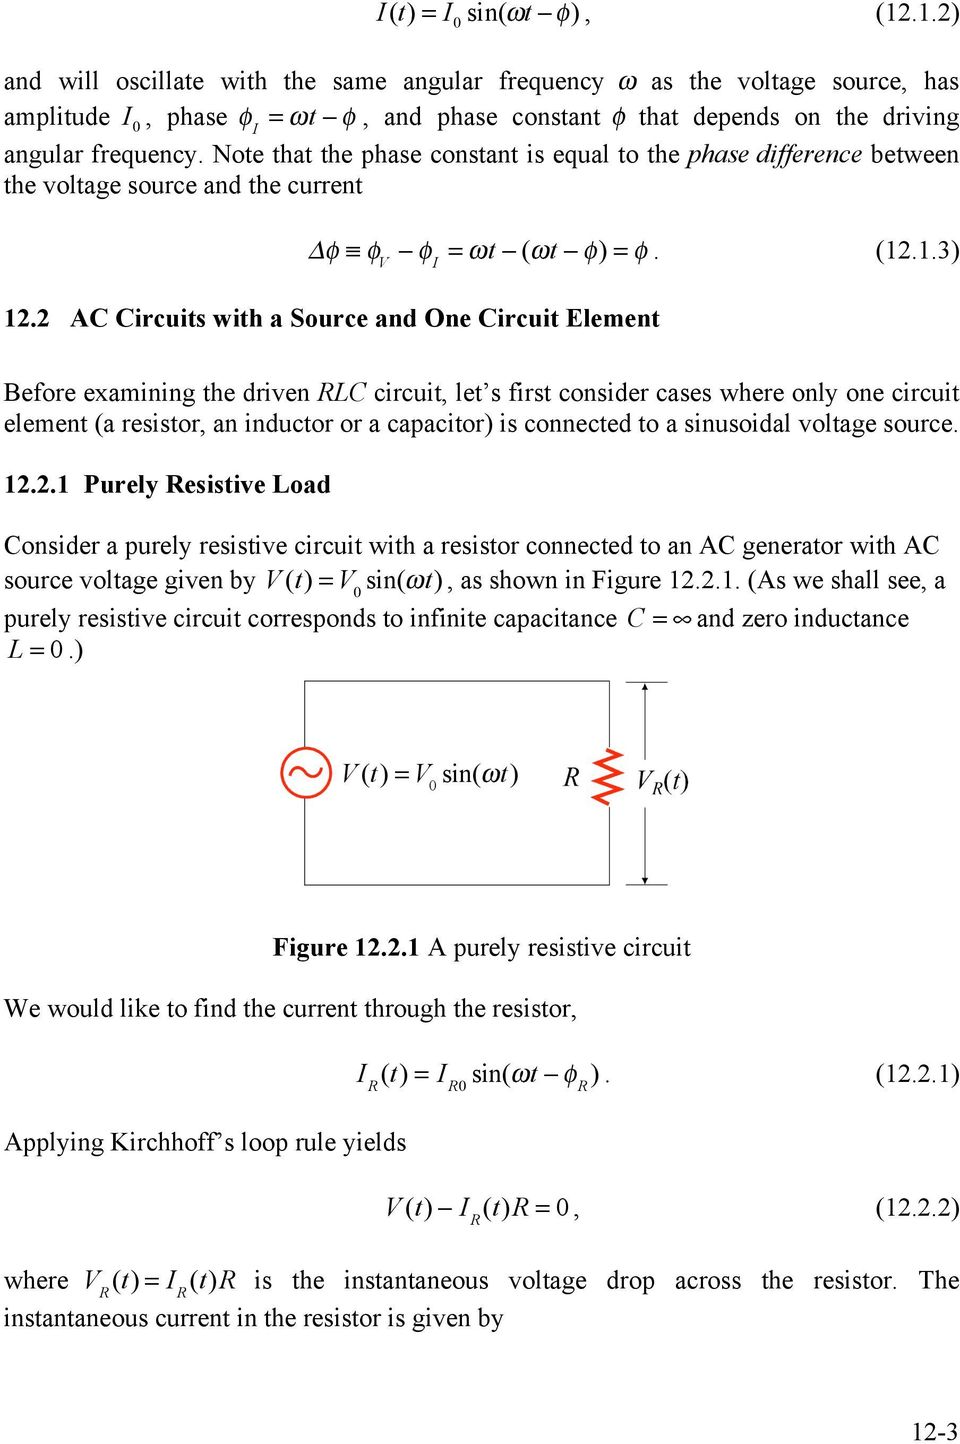 Chapter 12 Driven Rlc Circuits Pdf Ac Circuit Inductance And Capacitance Lcr In Series Note That The Phase Constant Is Equal To Difference Between Voltage Source